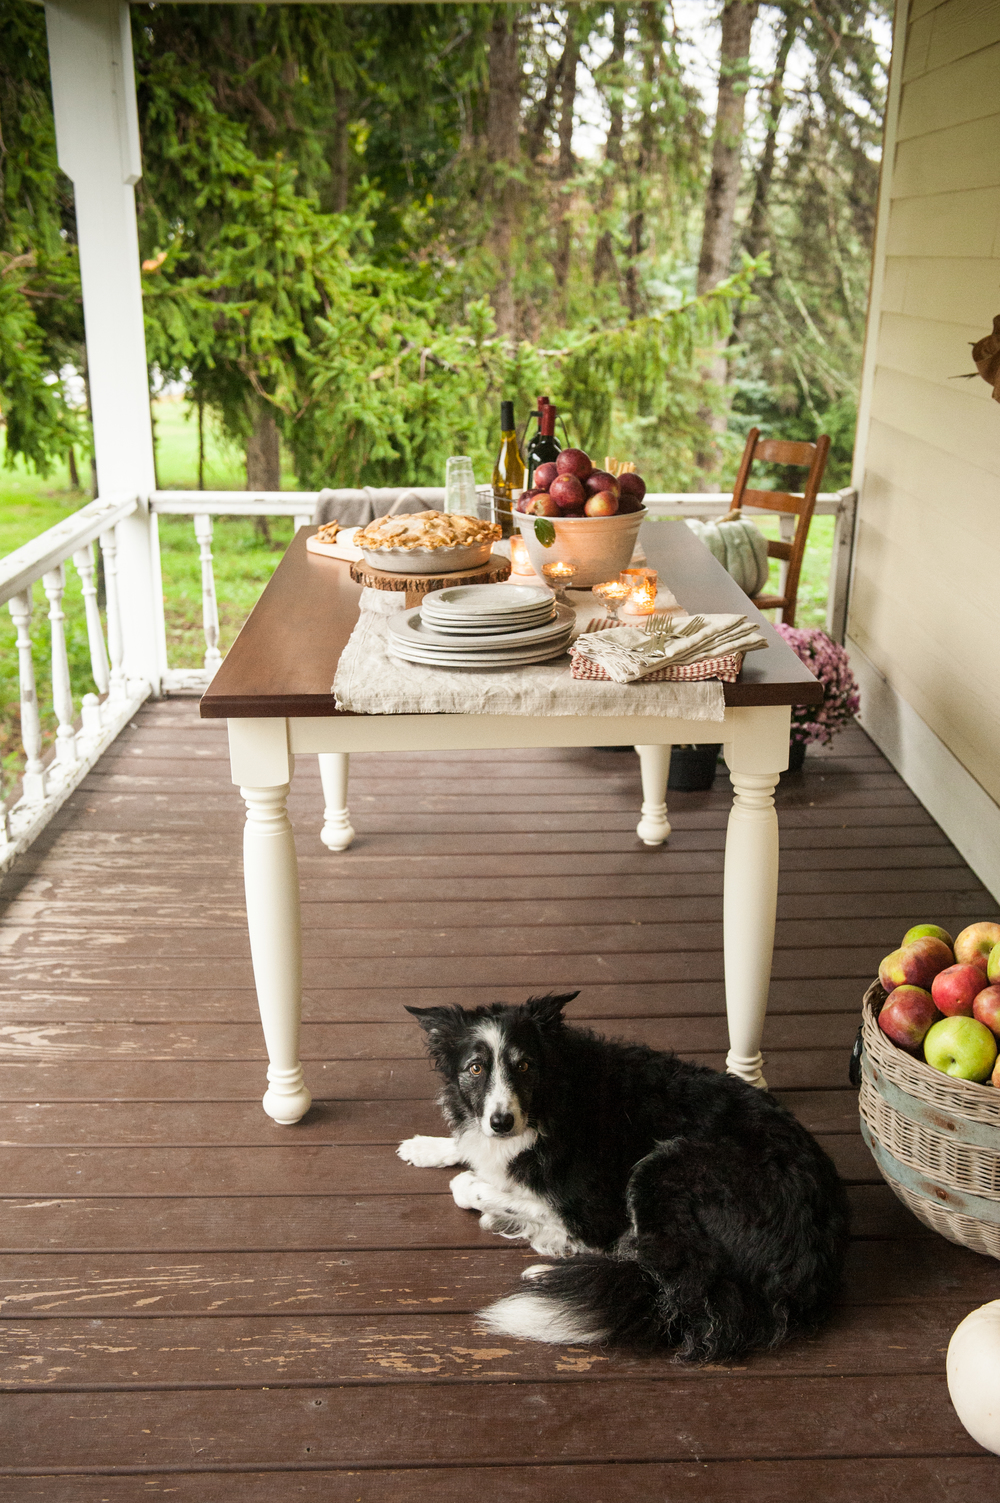 ouside_buffet_on_porch